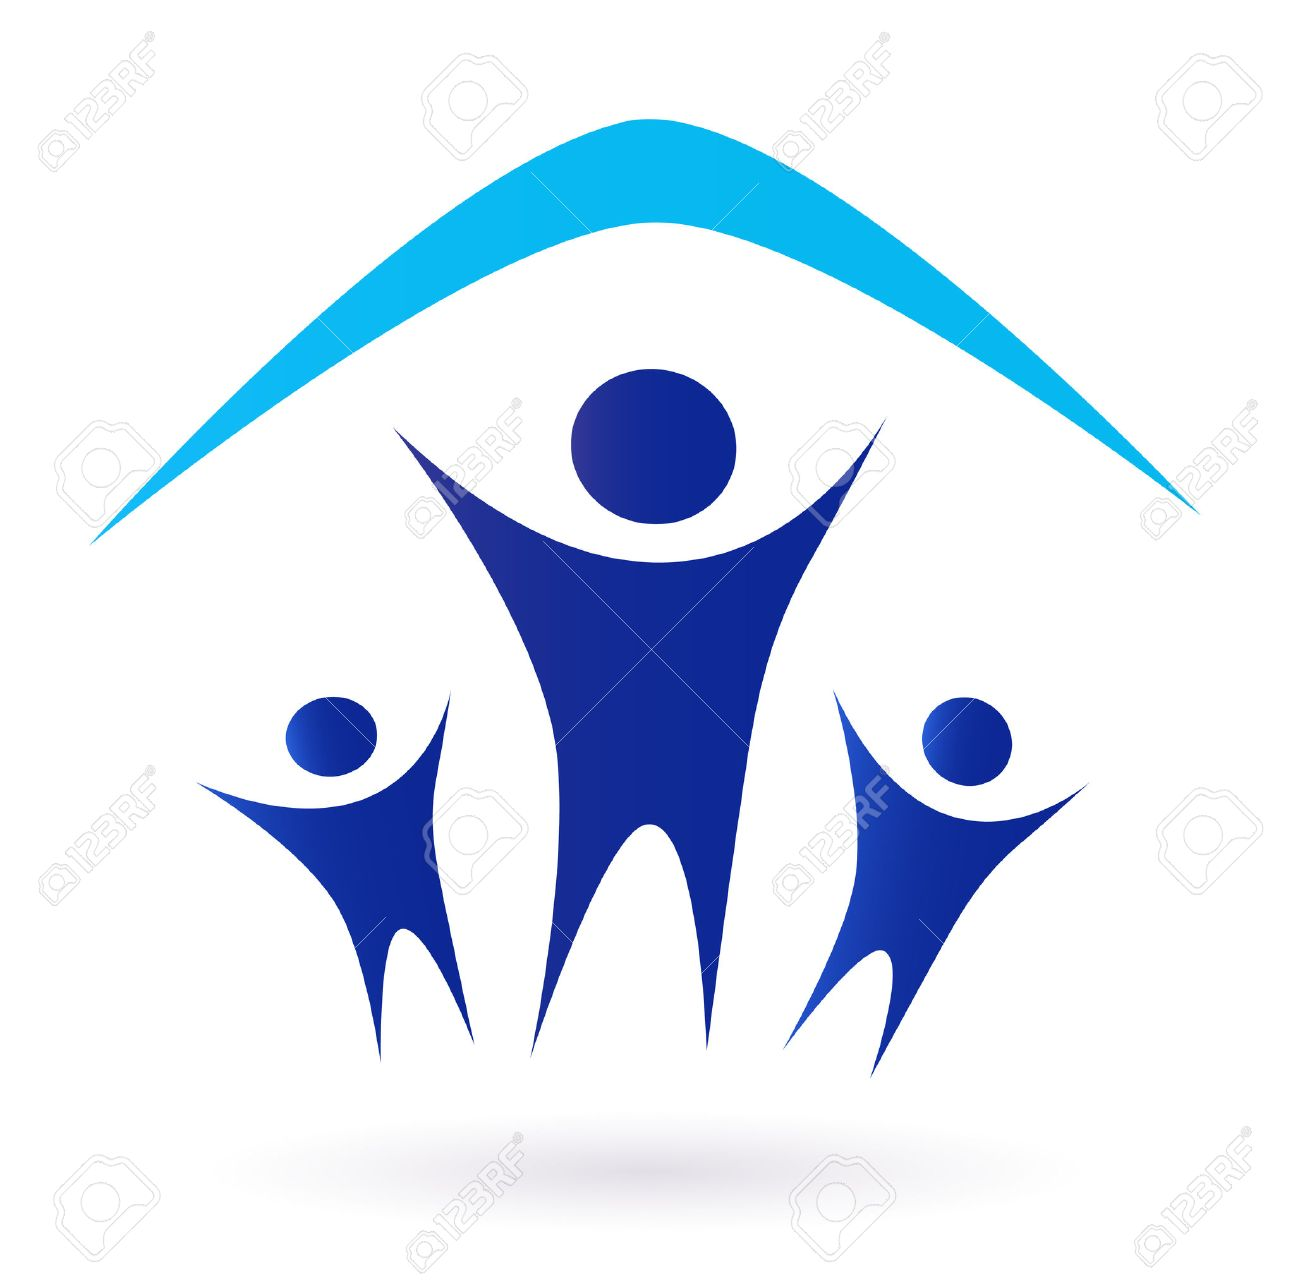 Family And House Roof Icon Isolated On White   Blue Family Under One Roof  Pictogram. Sc 1 St 123RF Stock Photos